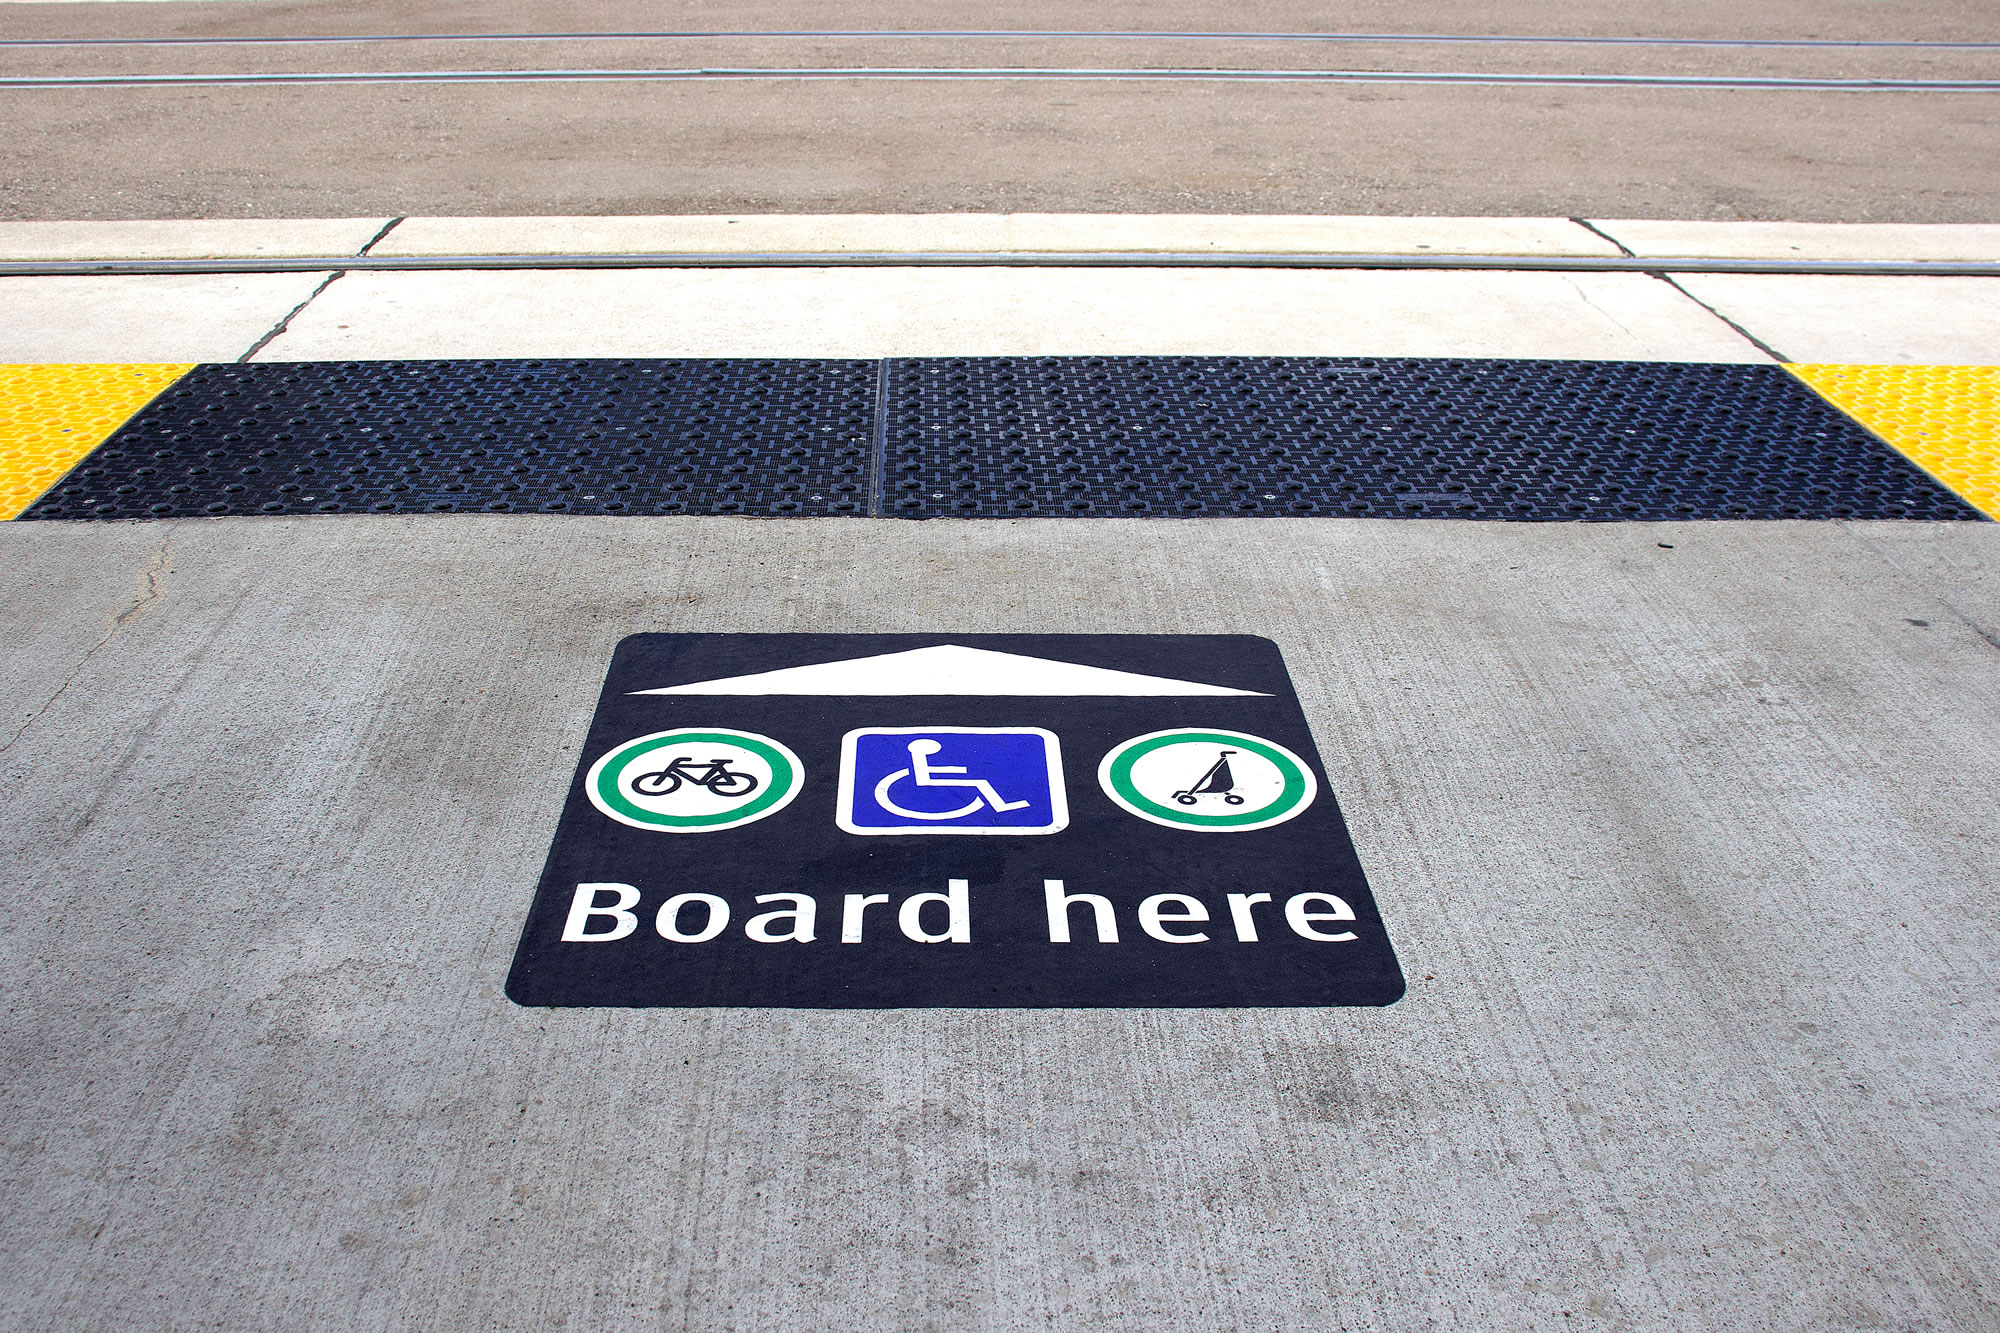 Accessible Point of Entry for Transit